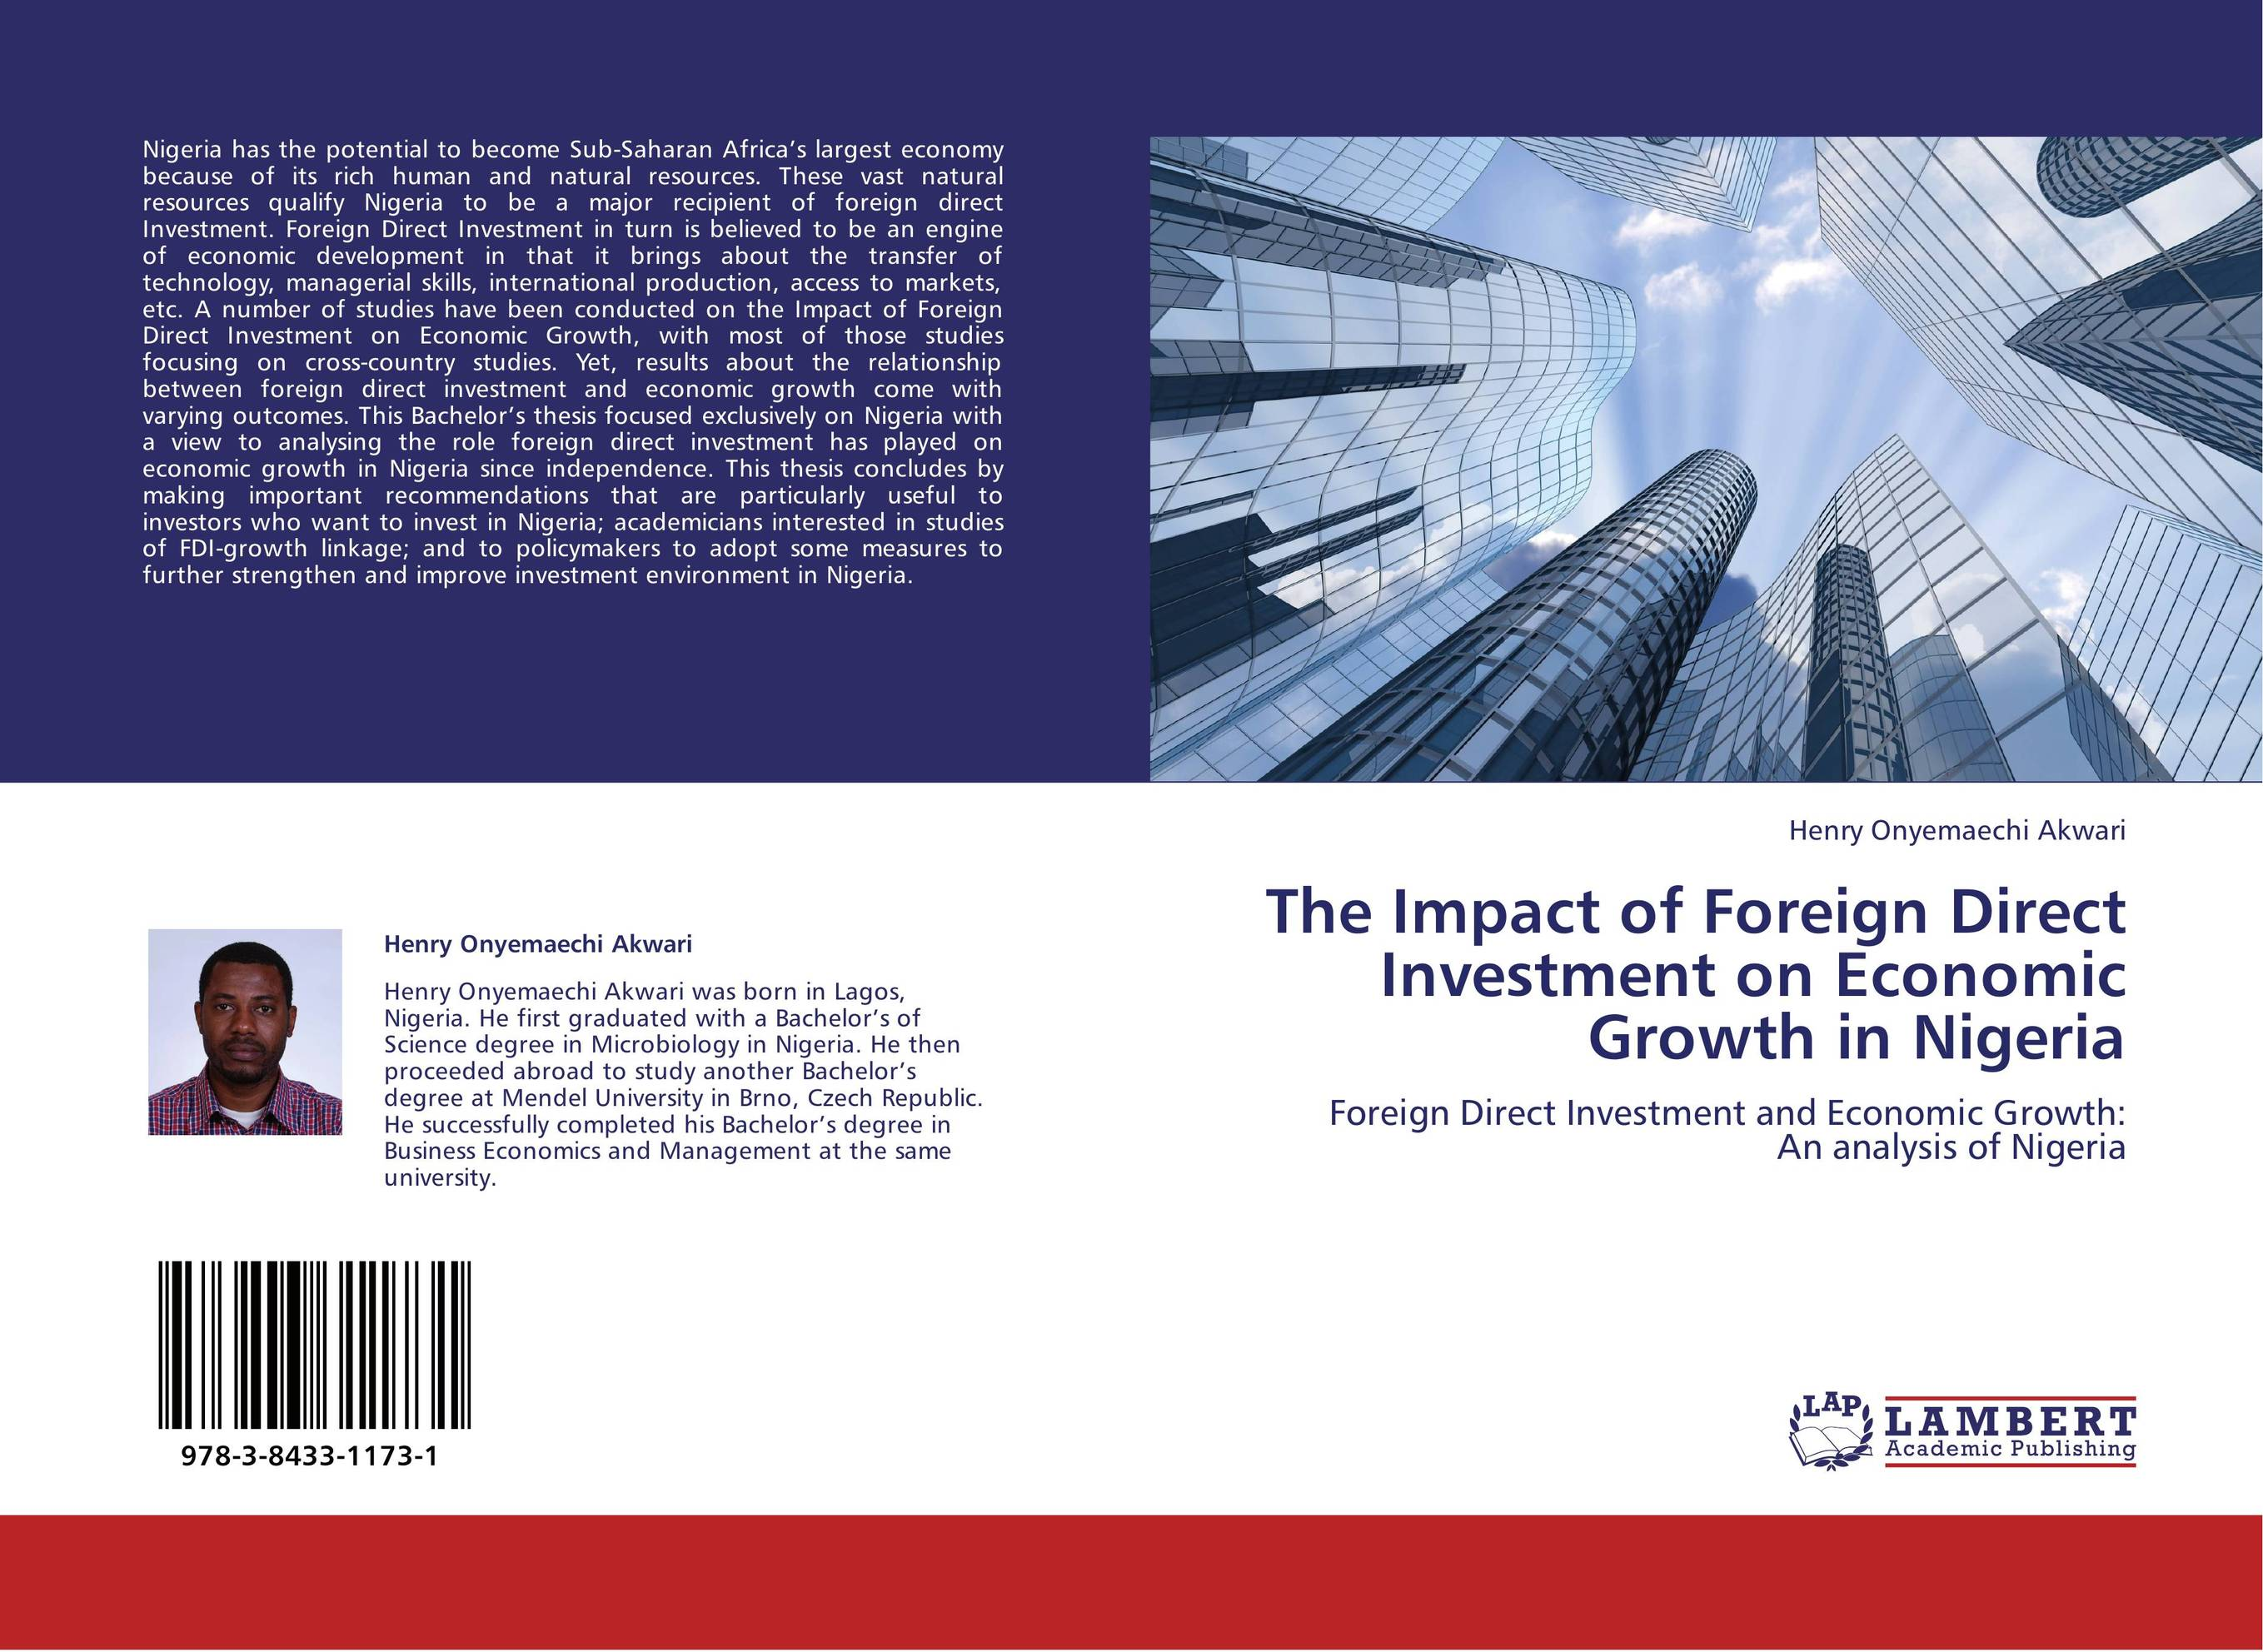 impact of fdi in tanzania Higher flow of foreign direct investment over the world always reflects a better economic environment in the presence of economic reforms and fdi in the balance of payments accounts appears in two ways: + the initial outflow of fdi is entered as an outflow (debit) on the capital account.